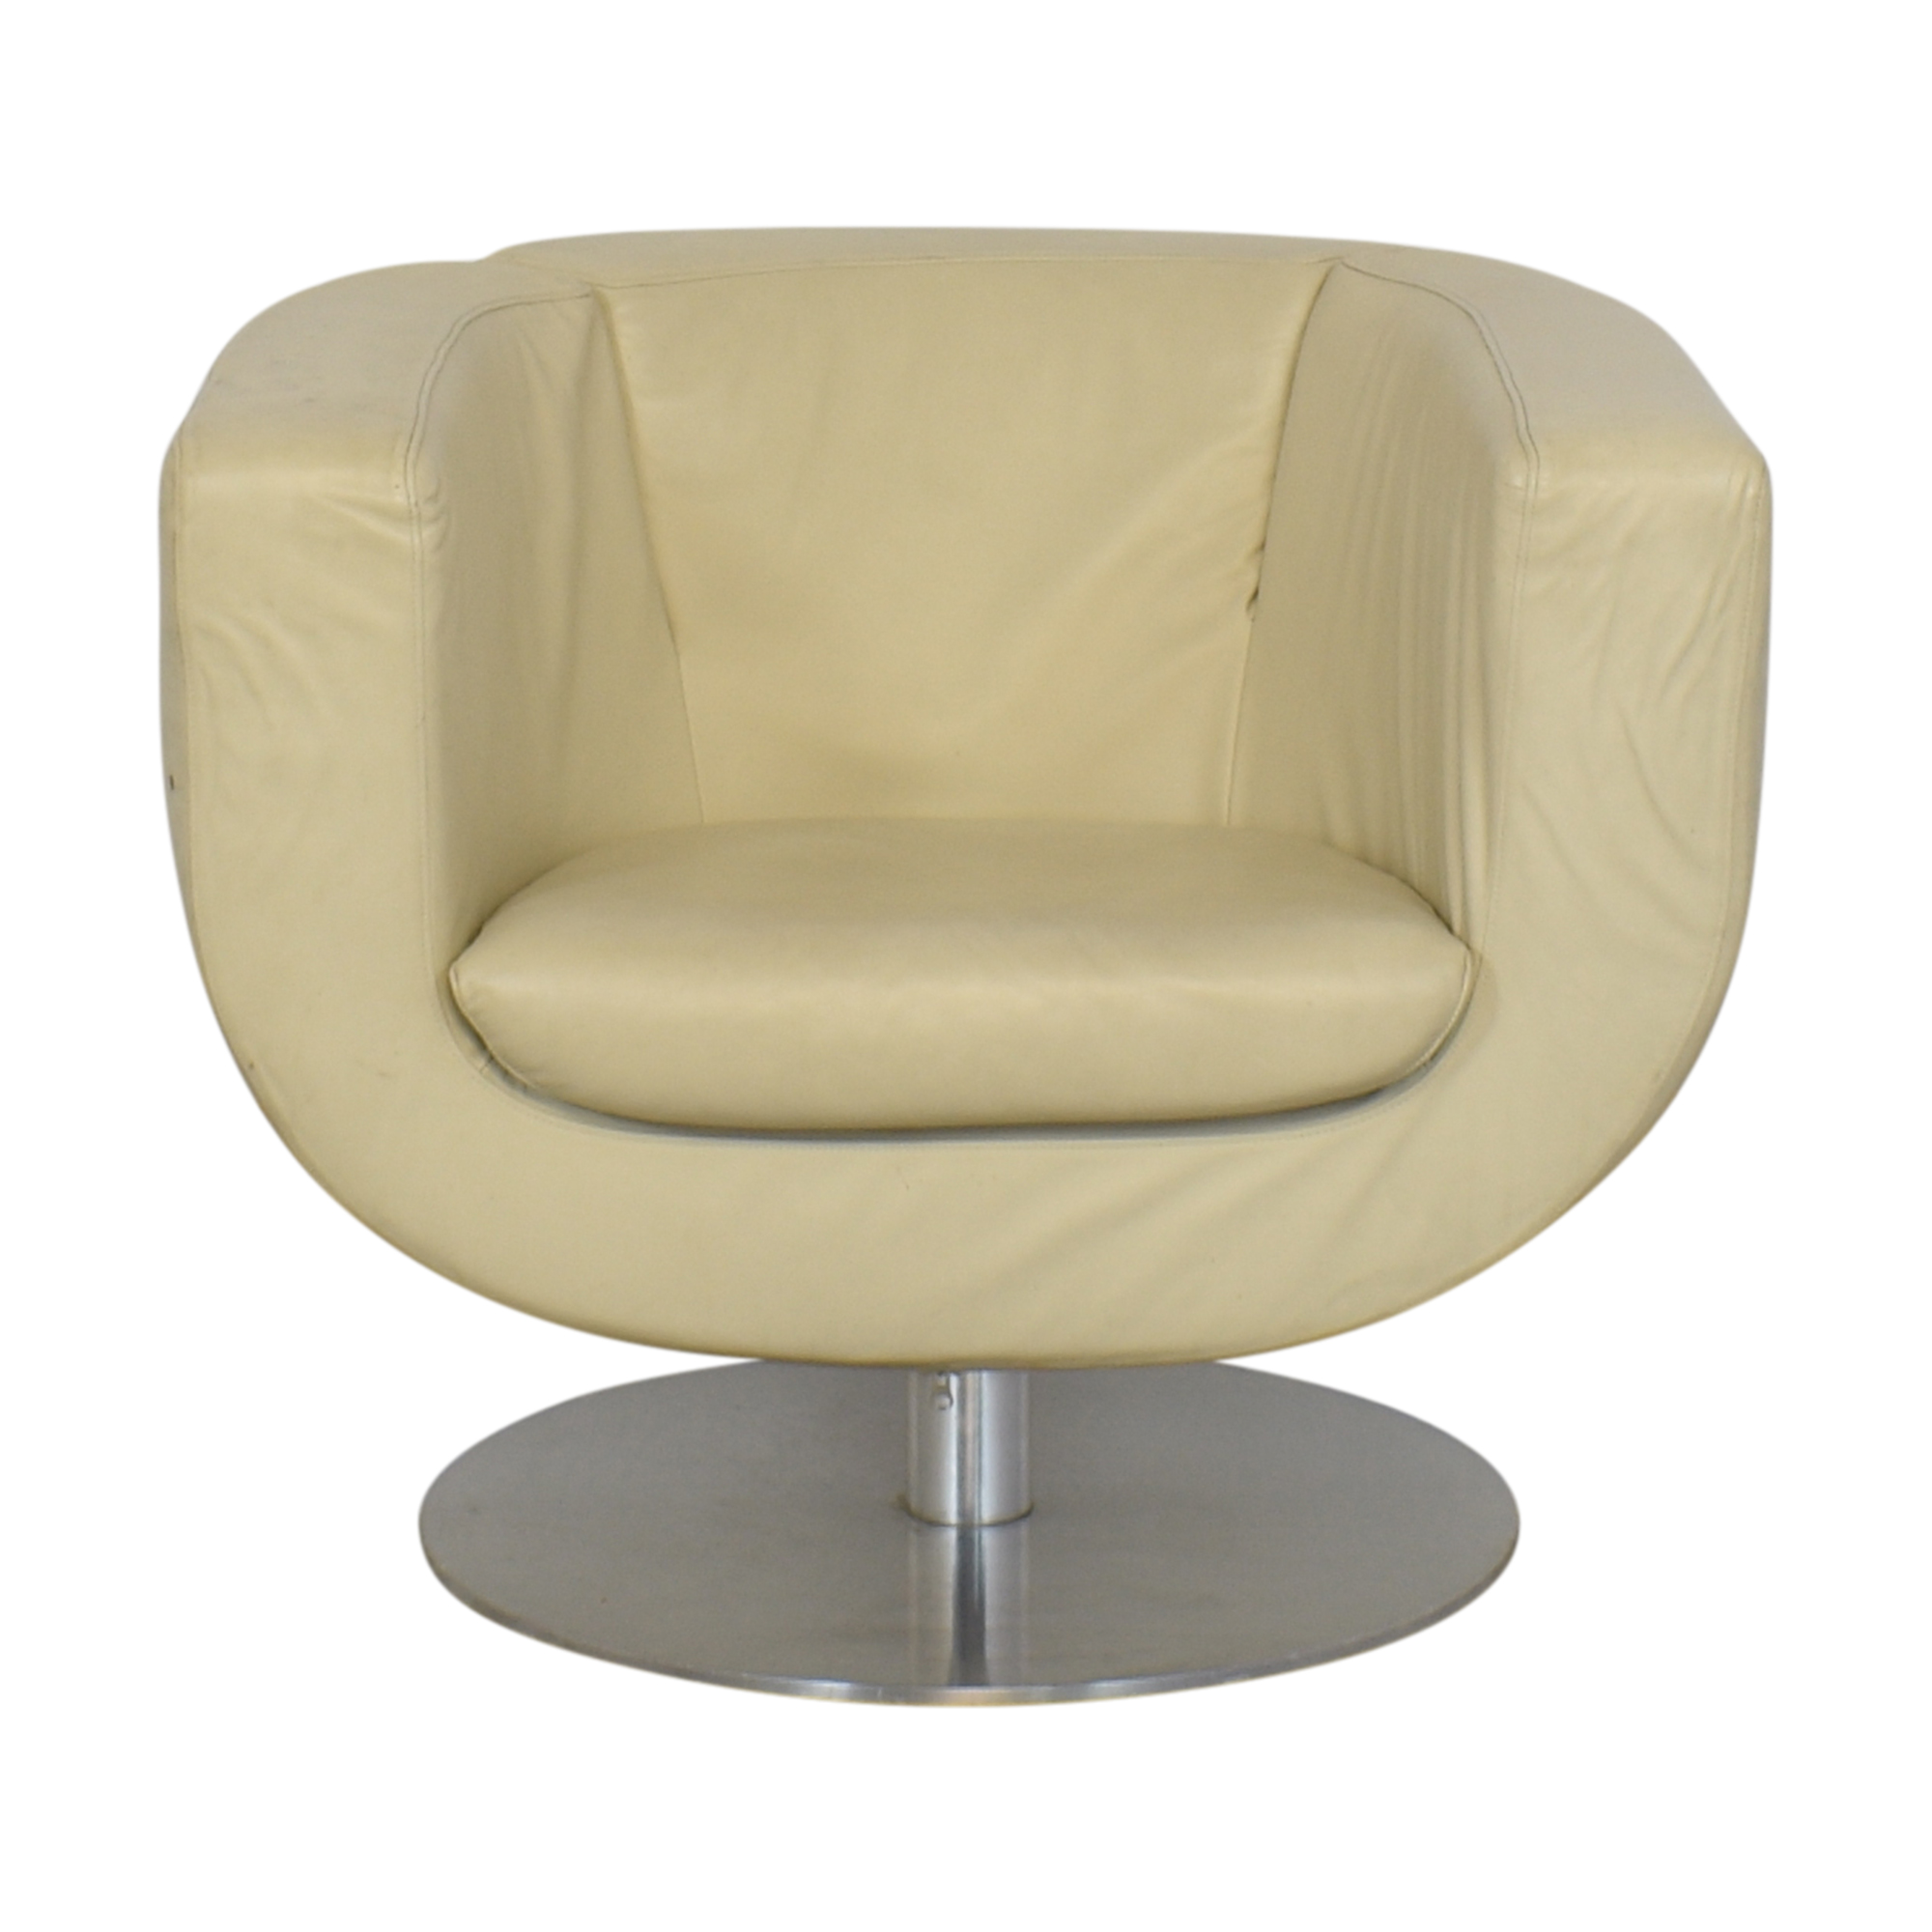 B&B Italia B&B Italia Jeffrey Bernett Tulip Swivel Chair on sale